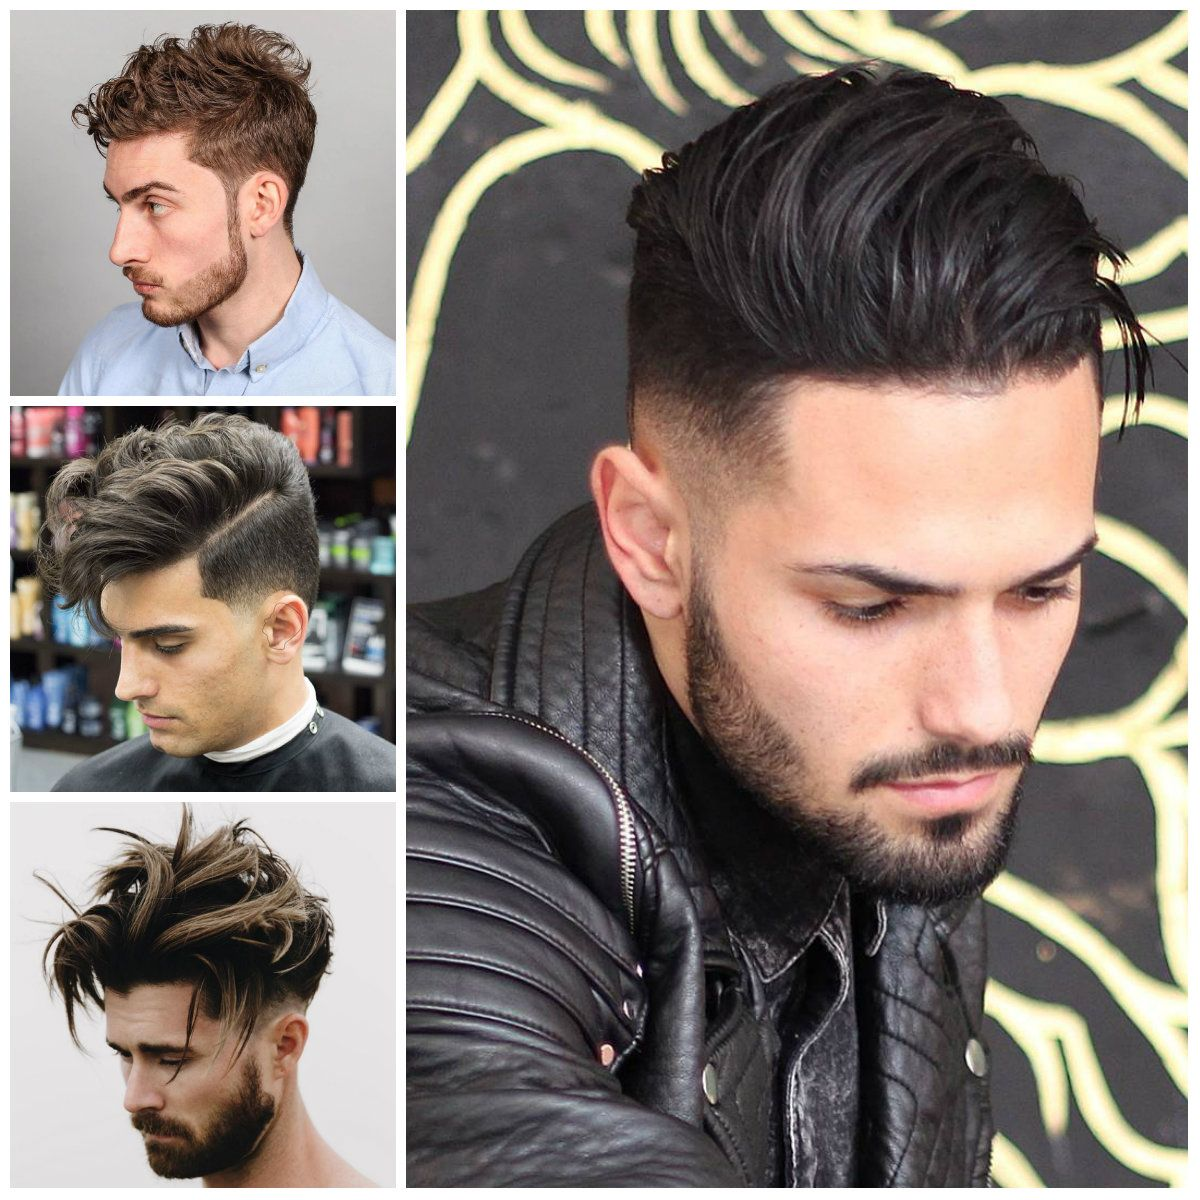 Medium hairstyles for men for hairstyles and haircuts